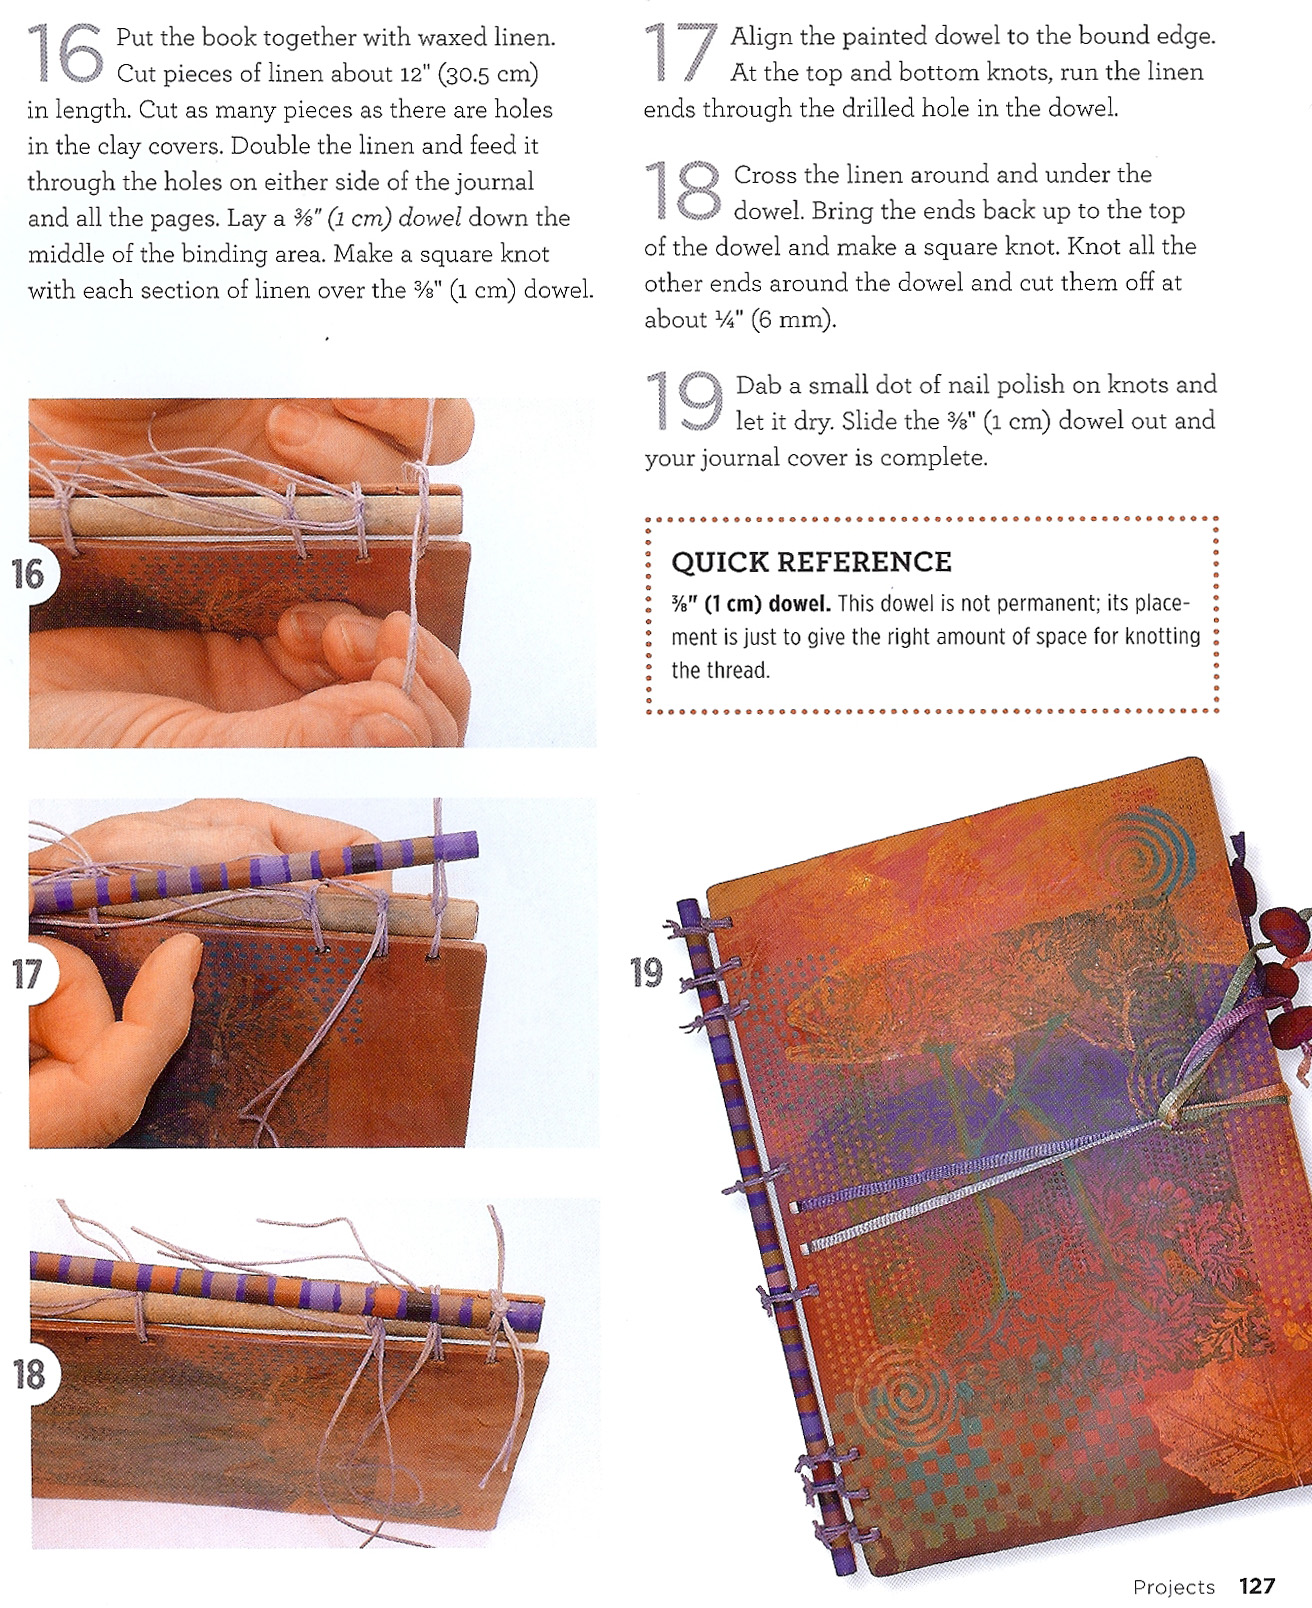 Craftside How To Make A Polymer Clay Bound Book From Polymer Clay 101 Master Basic Skills And Techniques Easily Through Step By Step Instruction